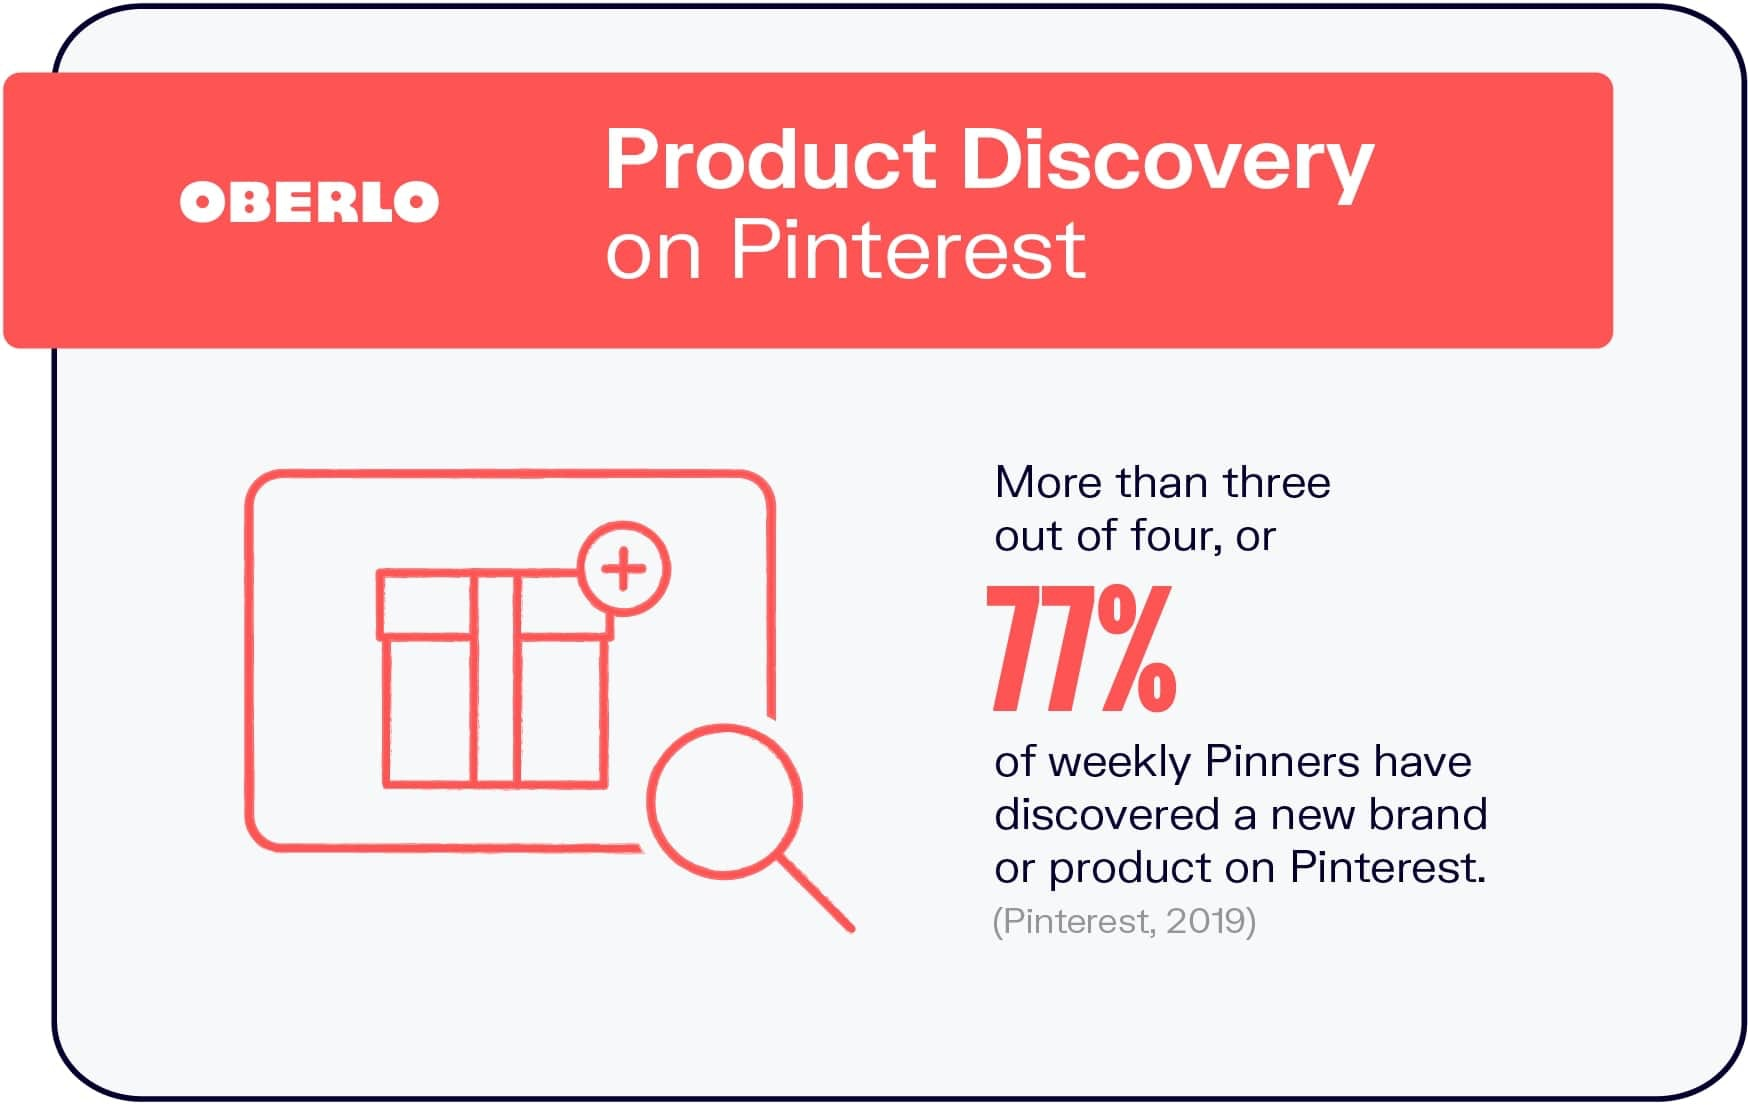 Product Discovery on Pinterest